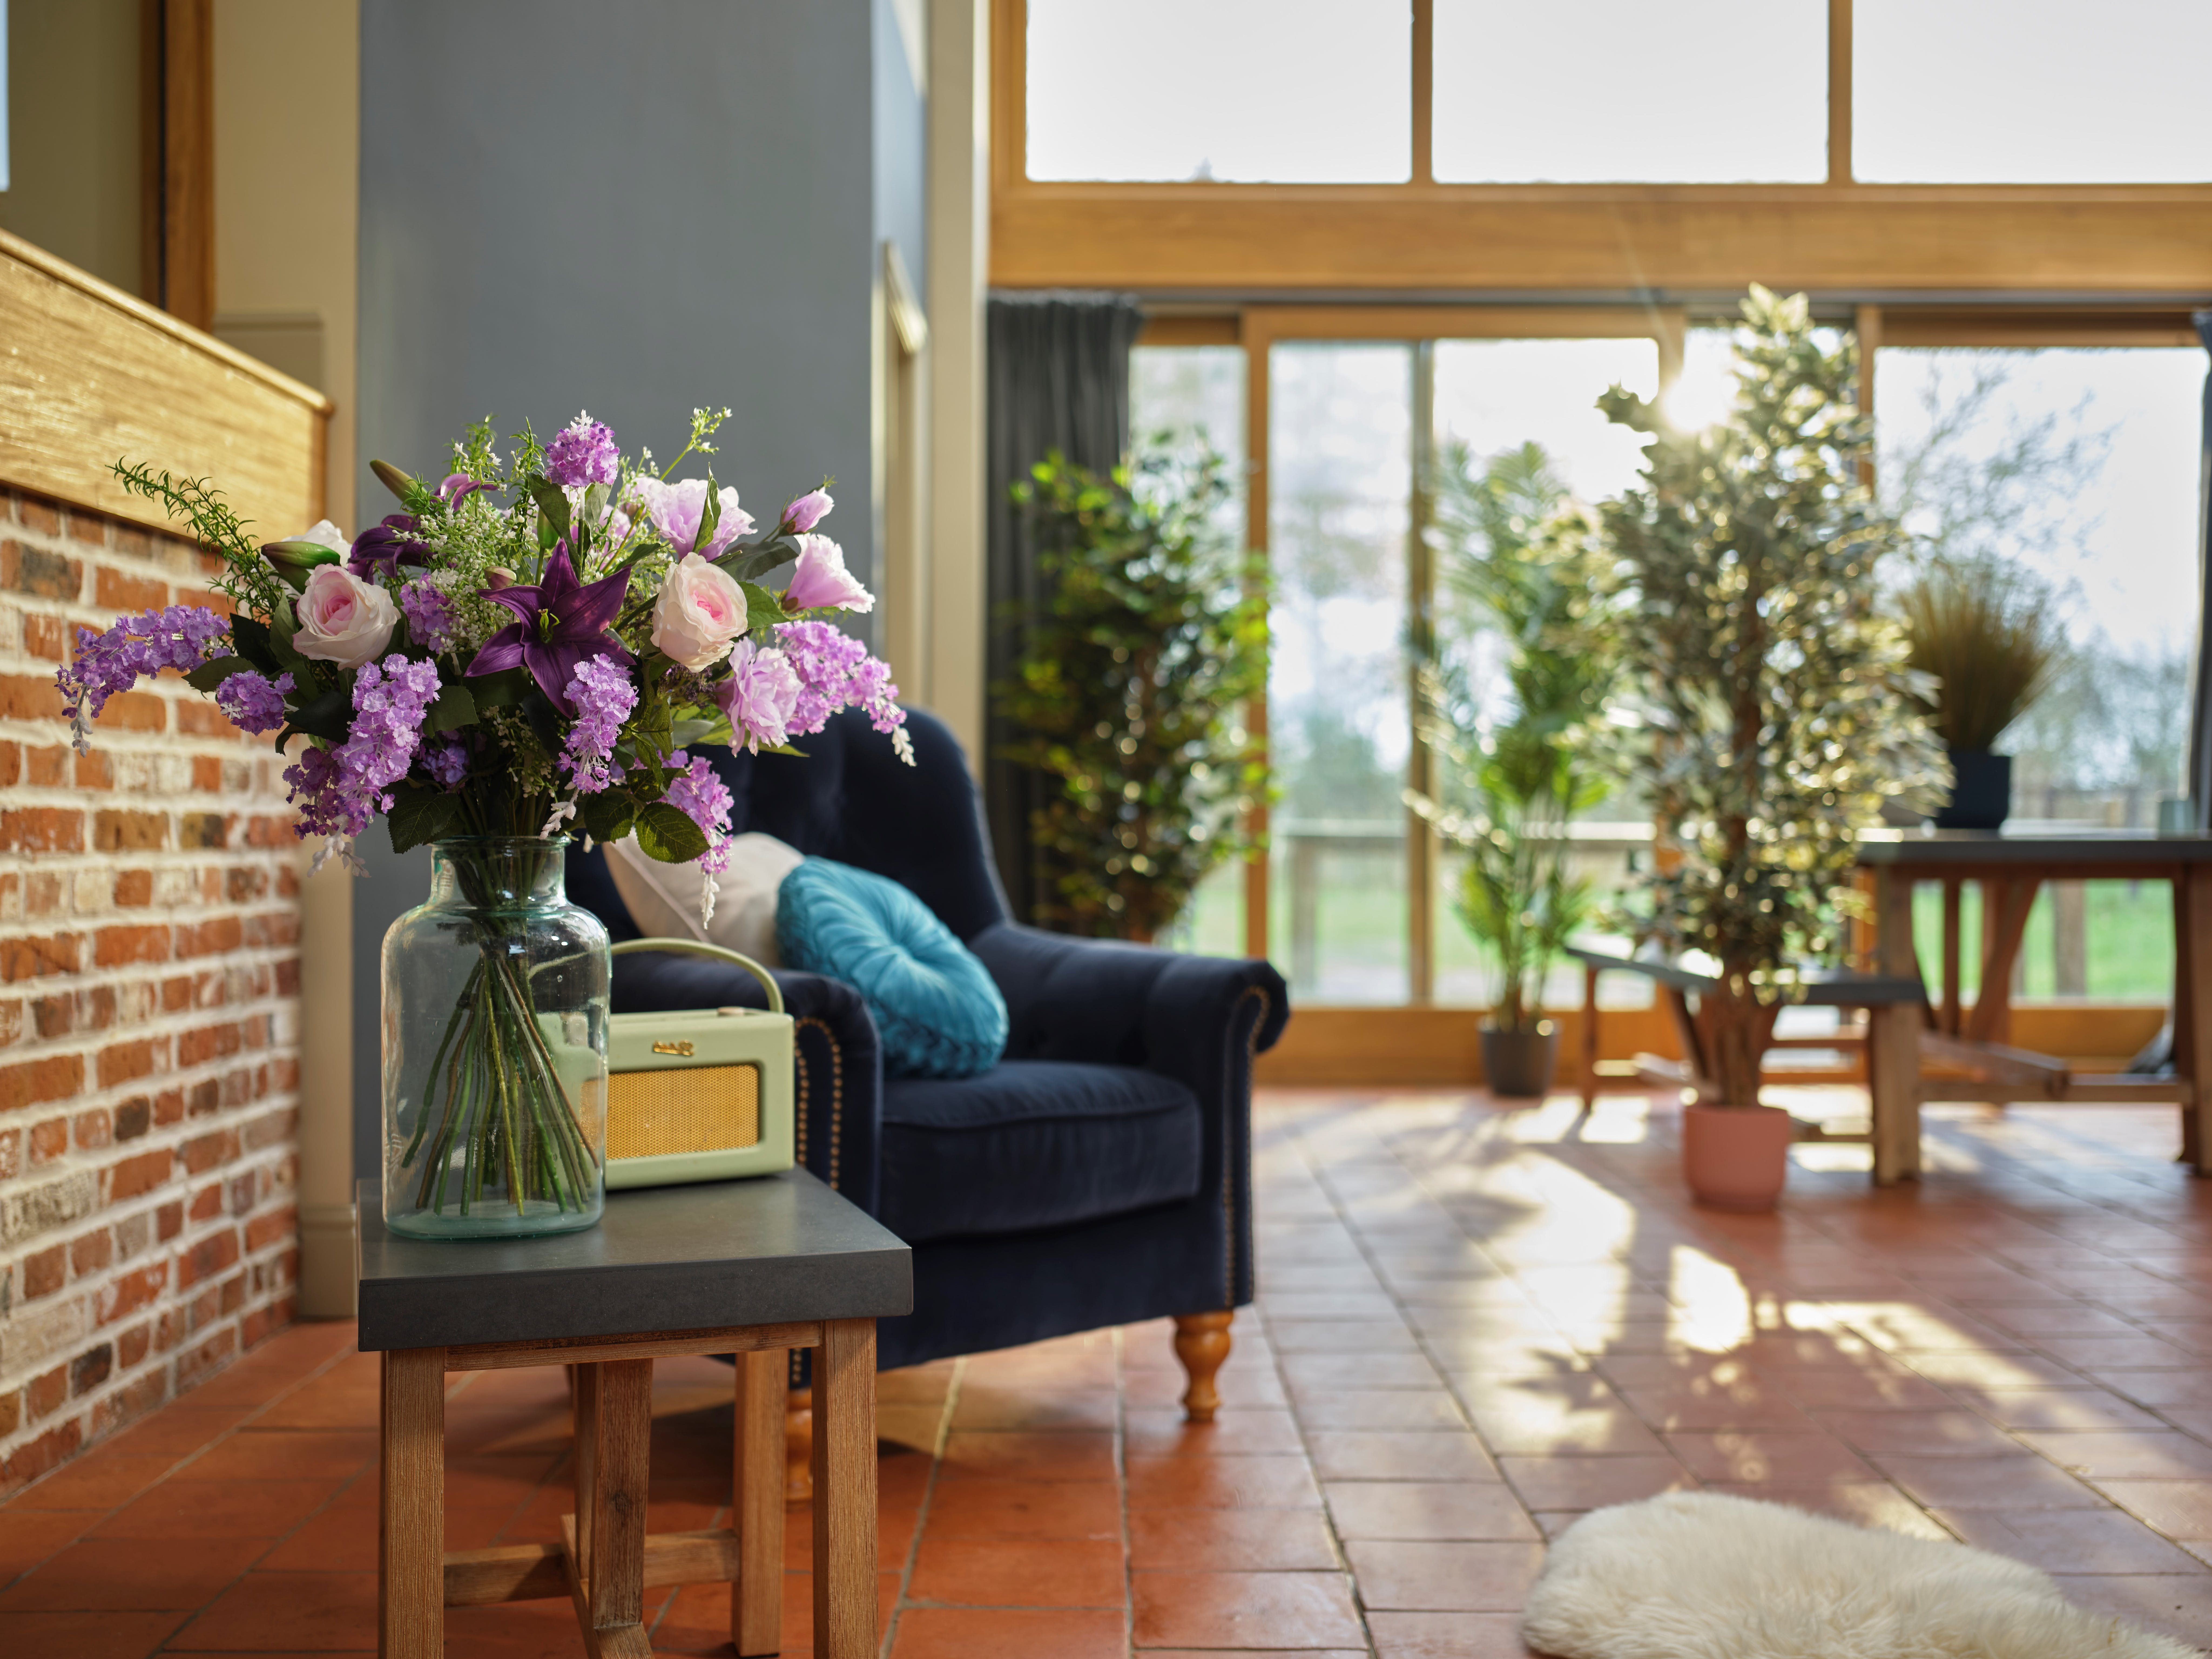 Artificial amethyst bouquet on side table by an armchair